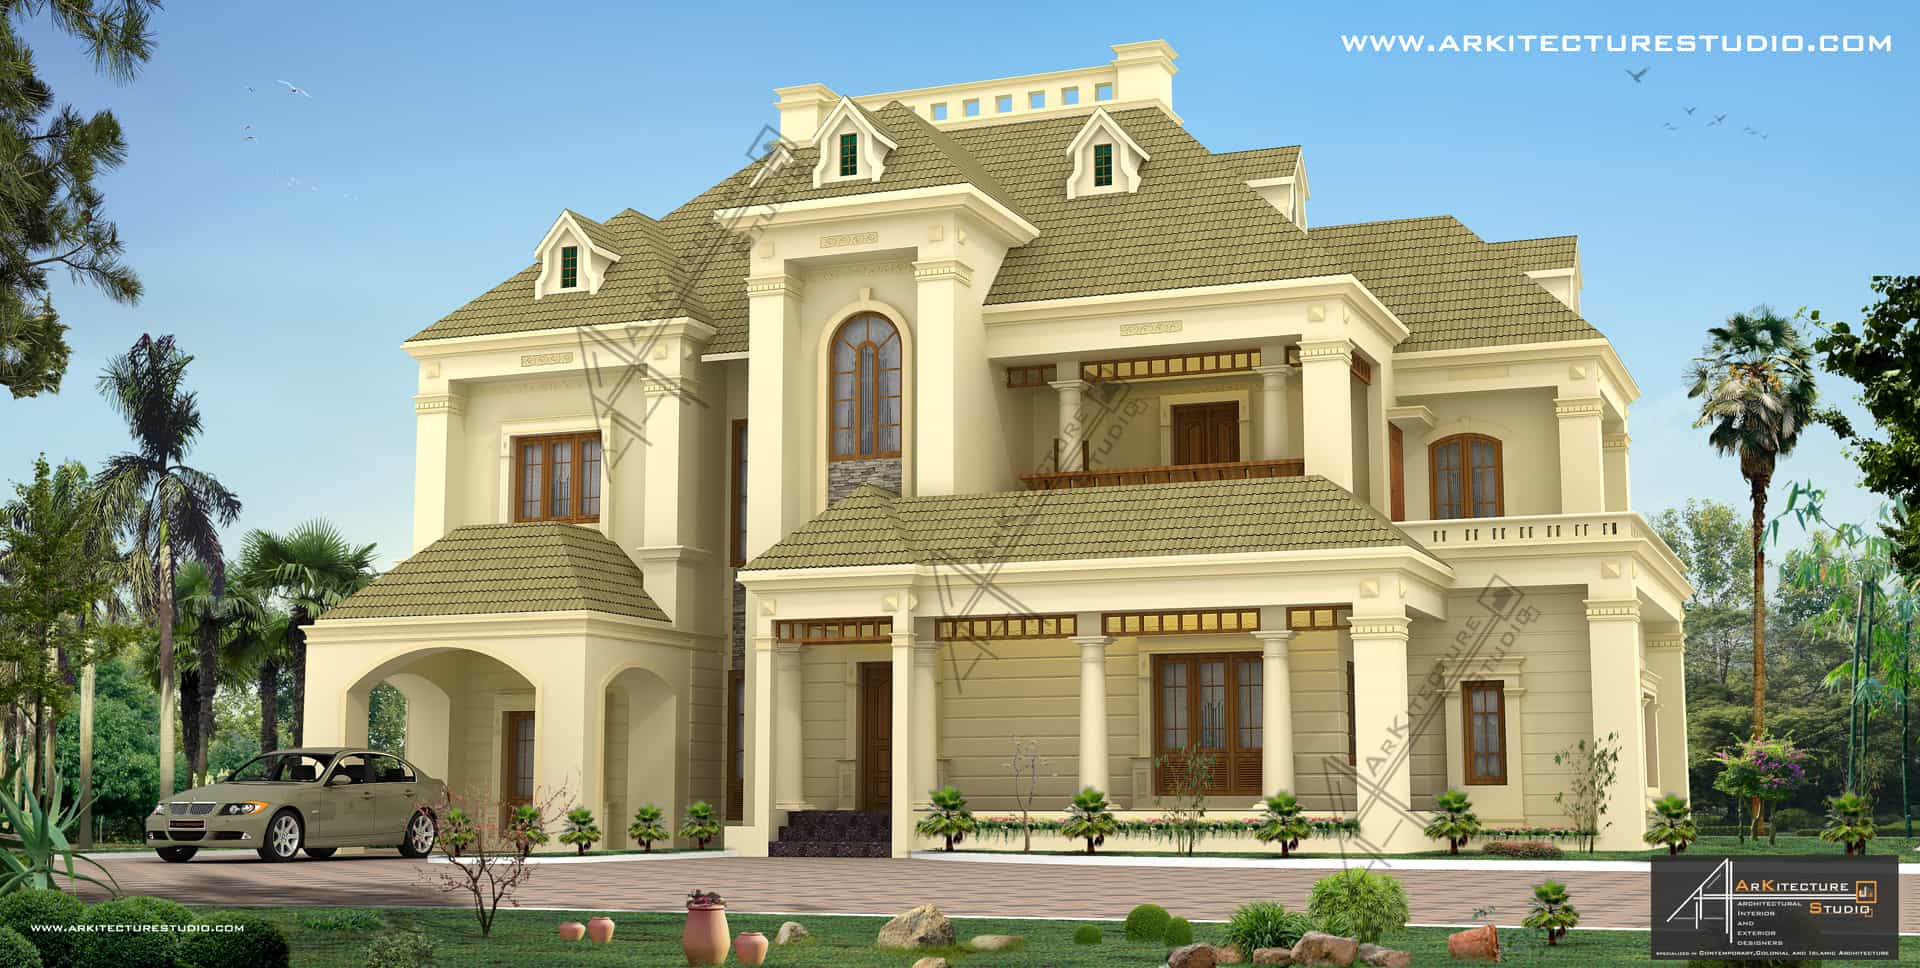 Colonial style house designs in kerala at 3500 sqft 5000 for 5000 sq ft house plans in india